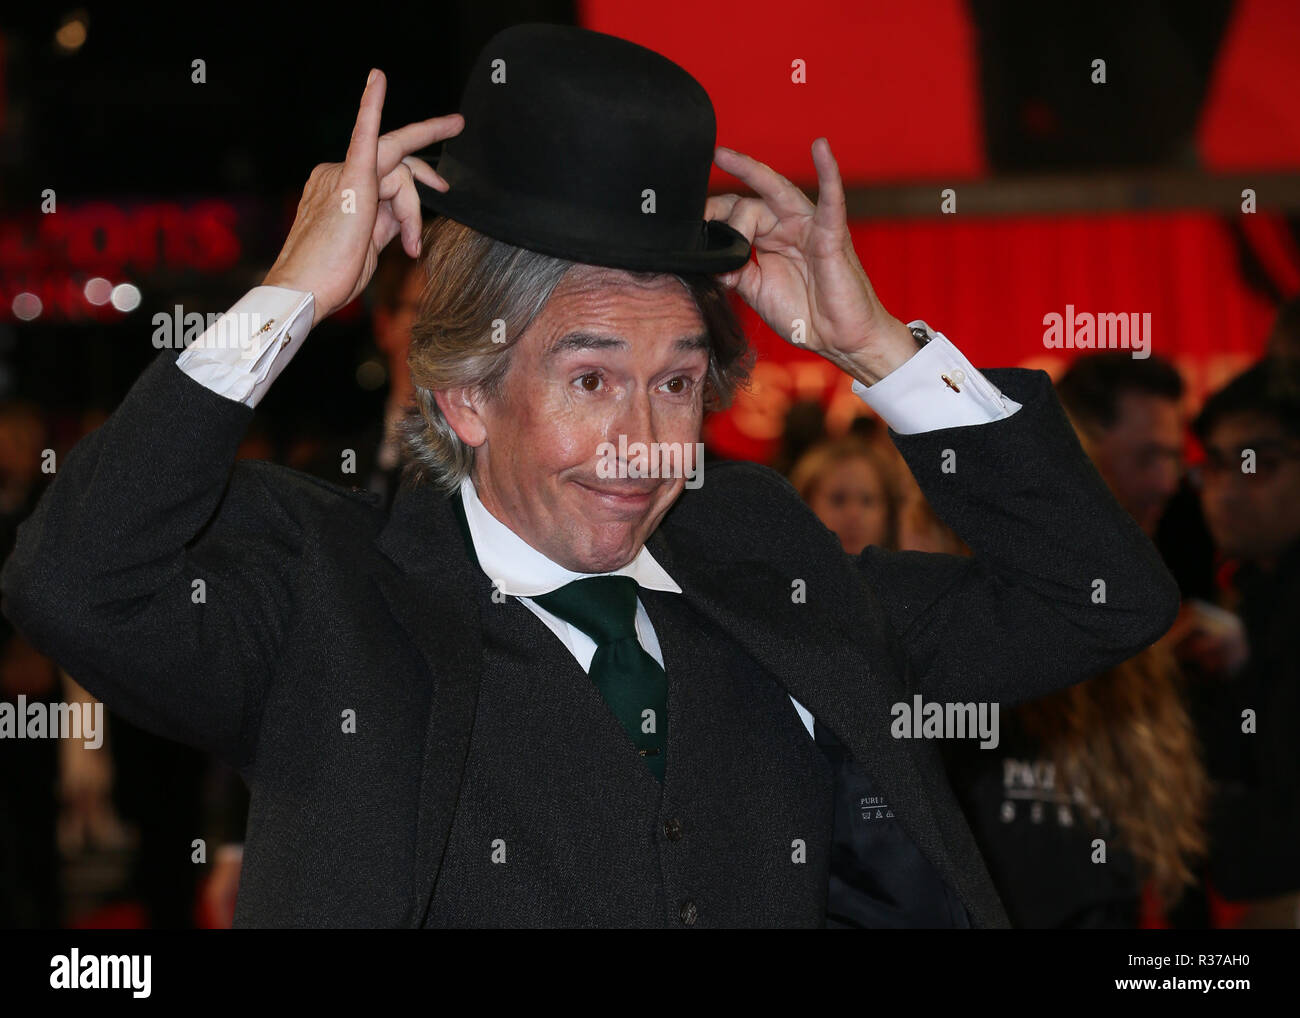 The BFI 62nd London Film Festival World Premiere of 'Stan & Ollie' held at the Cineworld Leicester Square - Arrivals  Featuring: Steve Coogan Where: London, United Kingdom When: 21 Oct 2018 Credit: Mario Mitsis/WENN.com - Stock Image